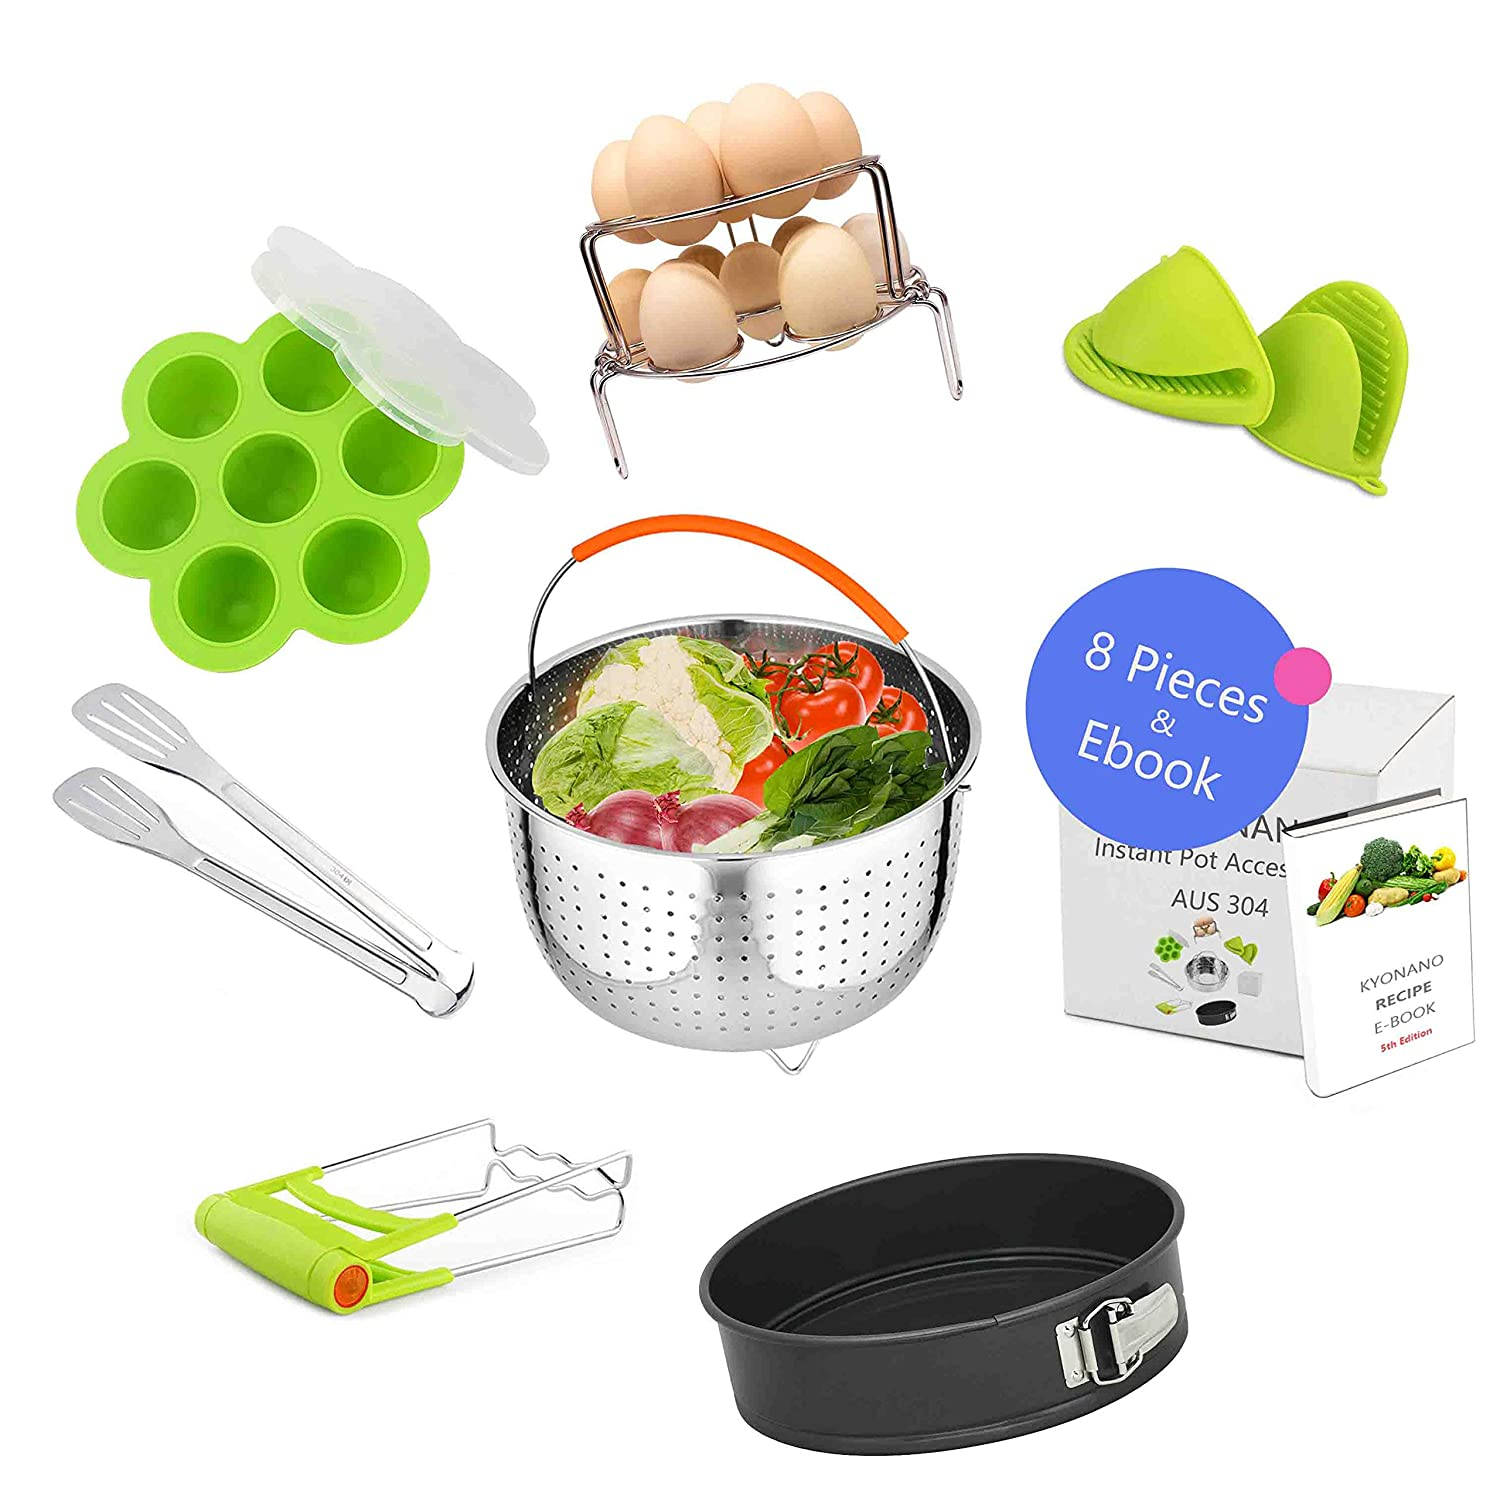 Instant Pot Accessories Set 8 Pcs Compatible with Instant Pot 5 6 8QT Include Steamer Basket, Springform Pan, Egg Steamer Rack Set, Egg Bites Mold, Tong, Plate Gripper, Silicone Gloves Kyonano